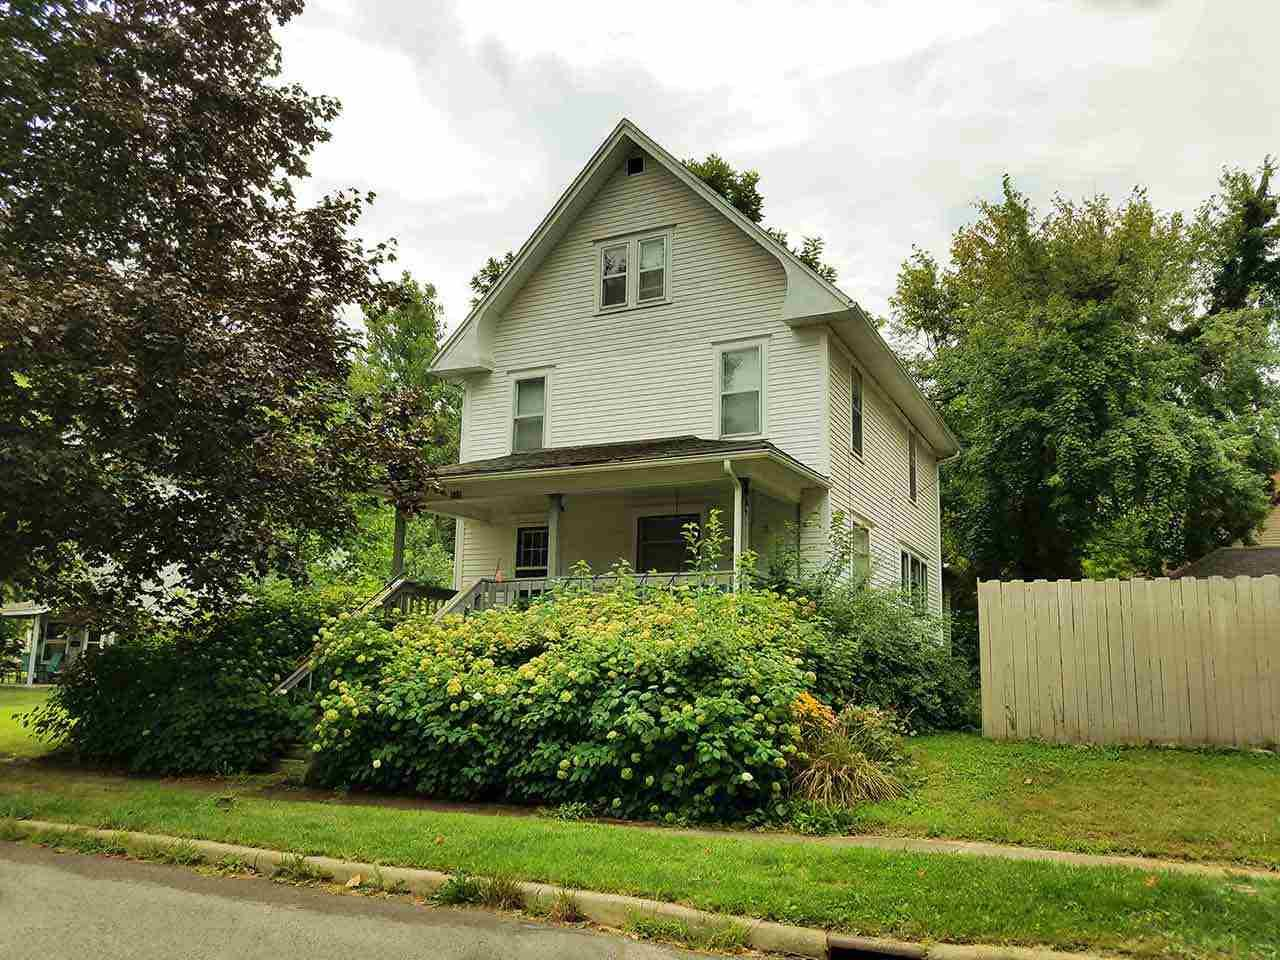 511 W Prospect St Angola, IN 46703